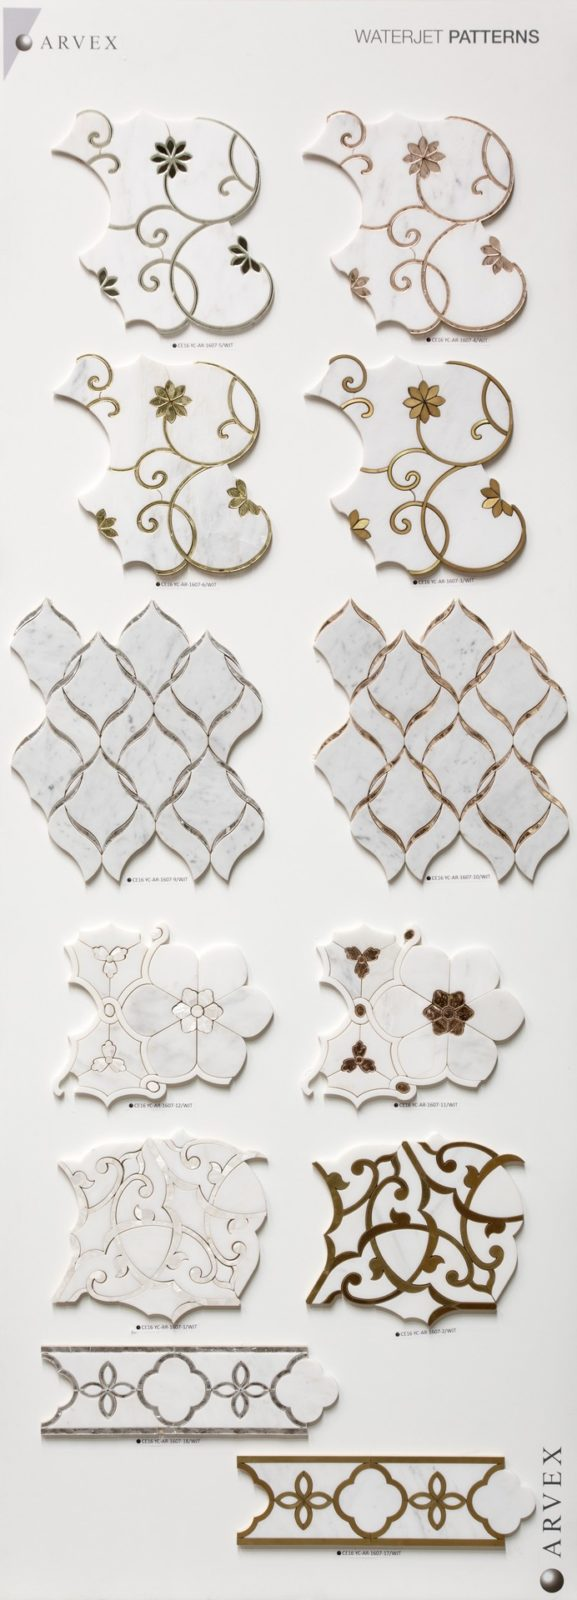 Mosaico - Waterjet Patterns 02